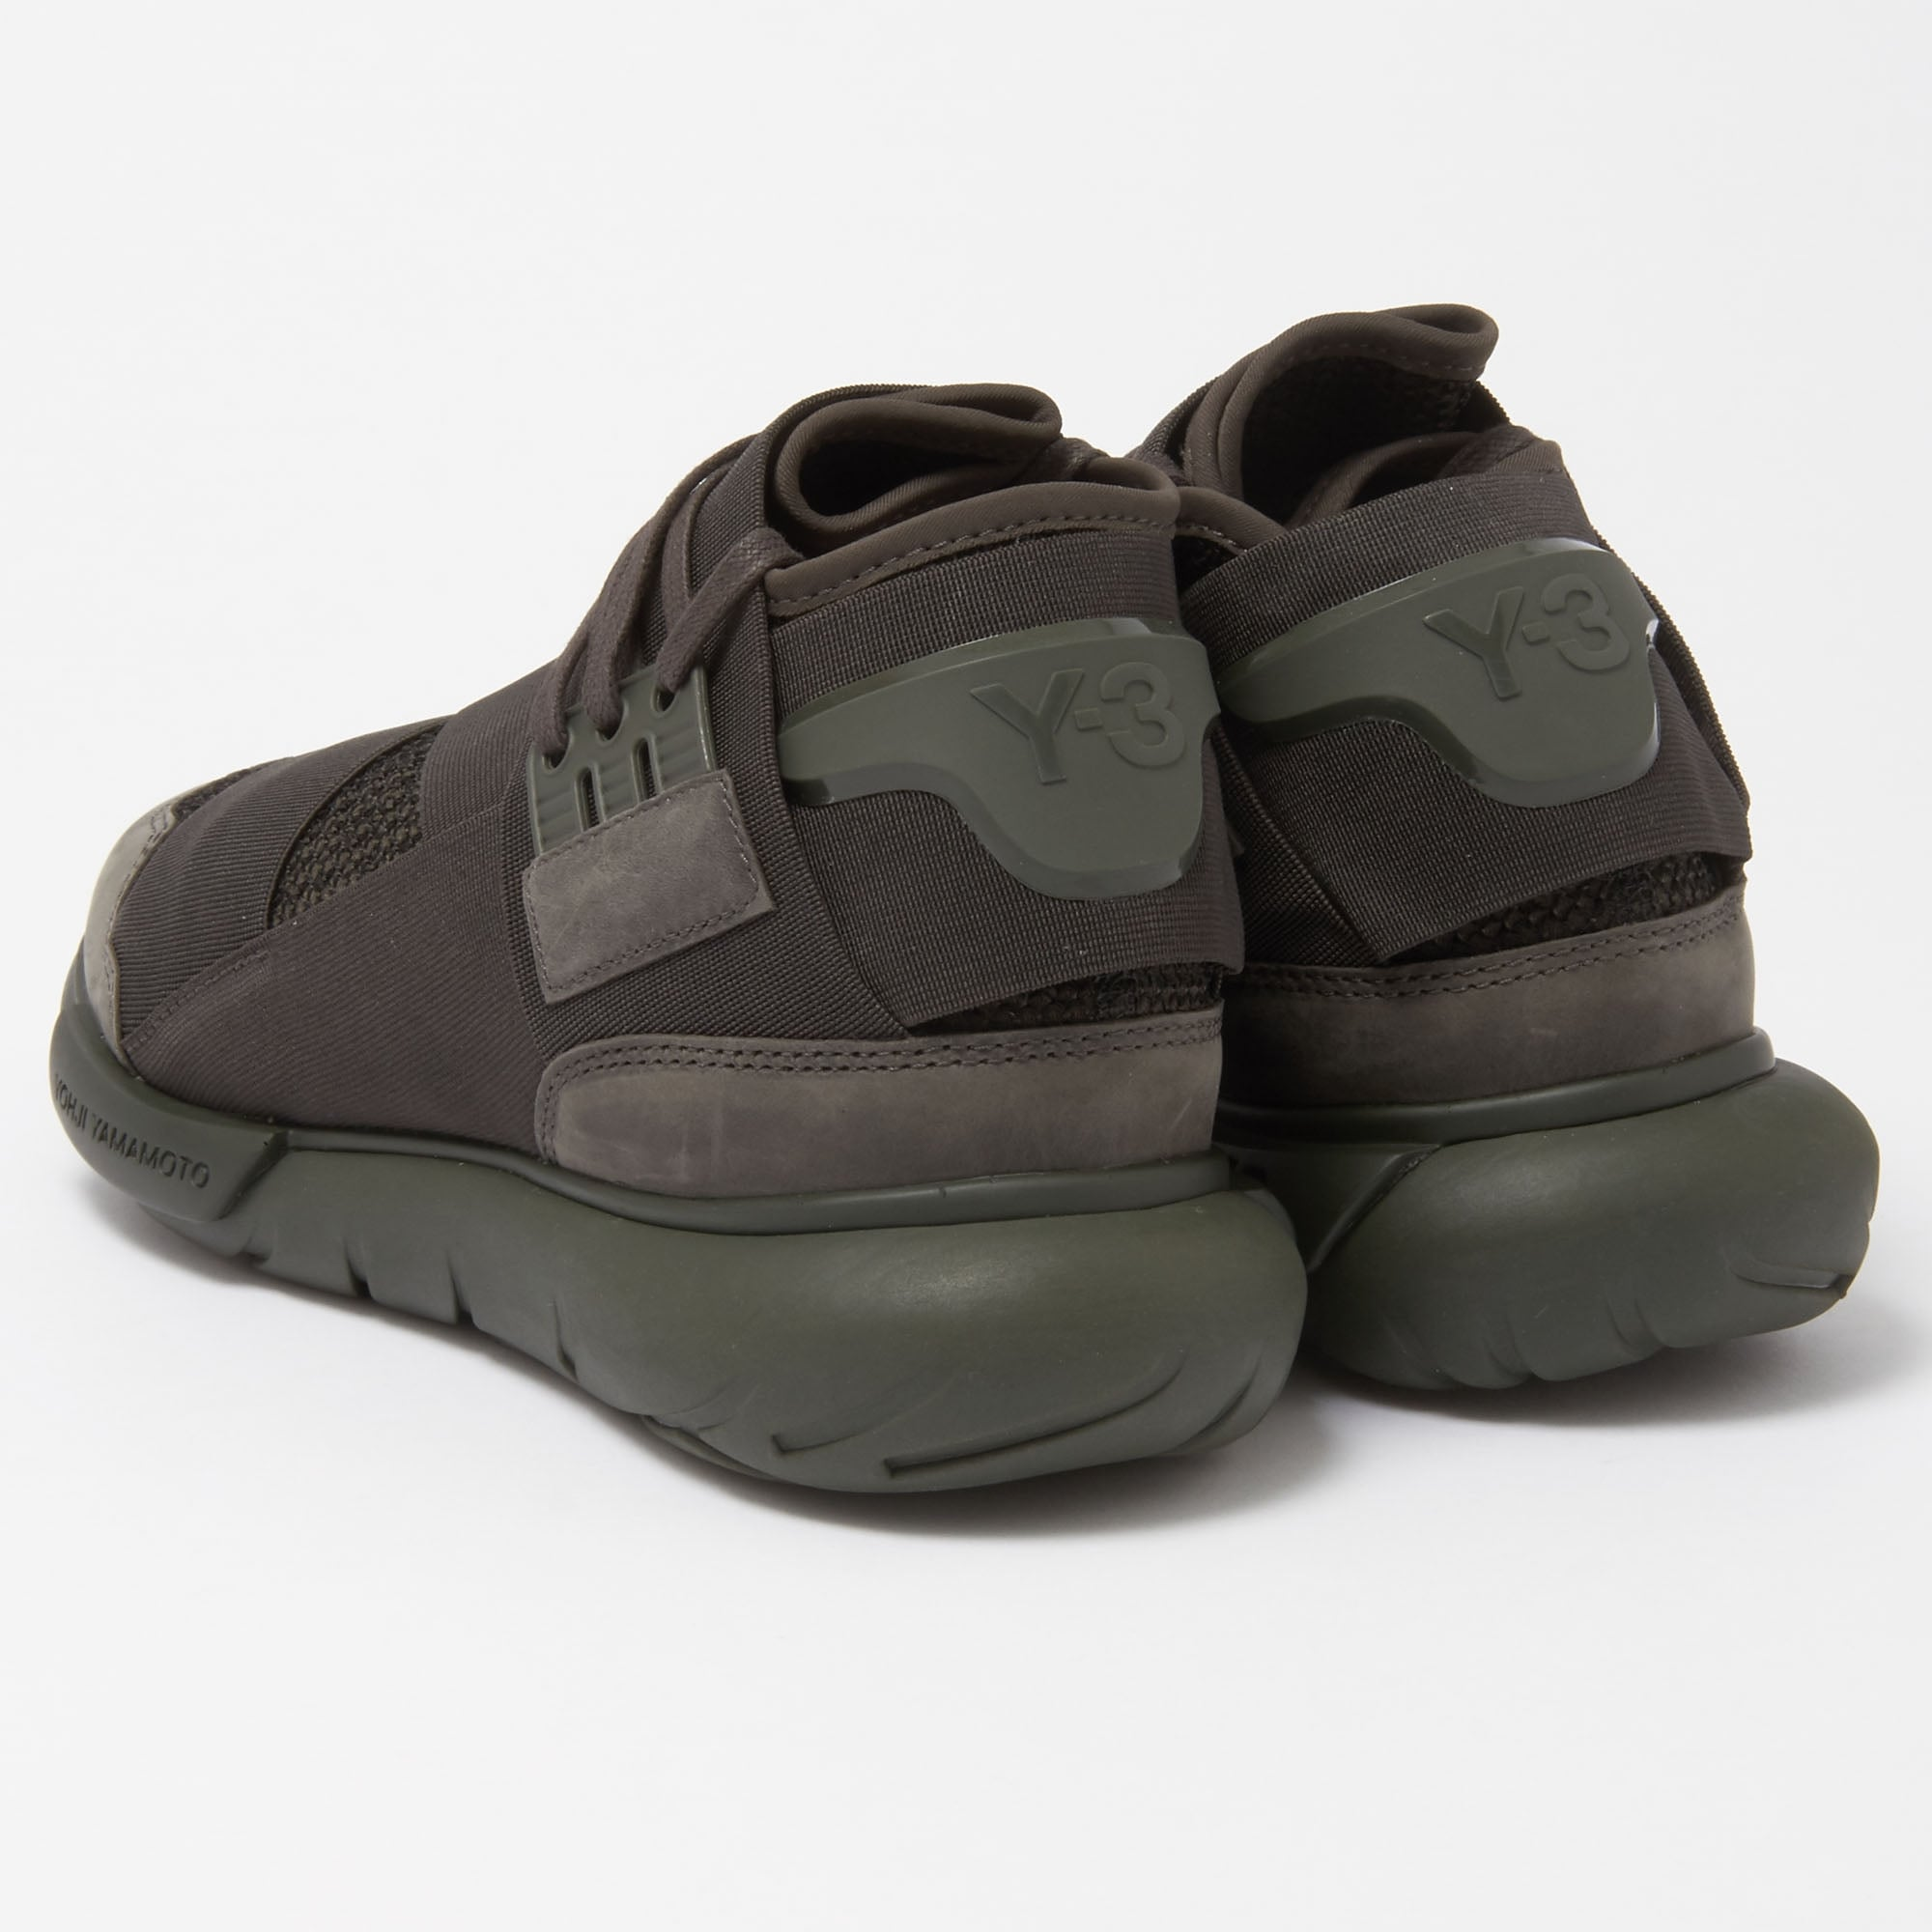 Adidas Y3 Qasa High CG3194  Qasa High Black Olive Sneakers CG3194